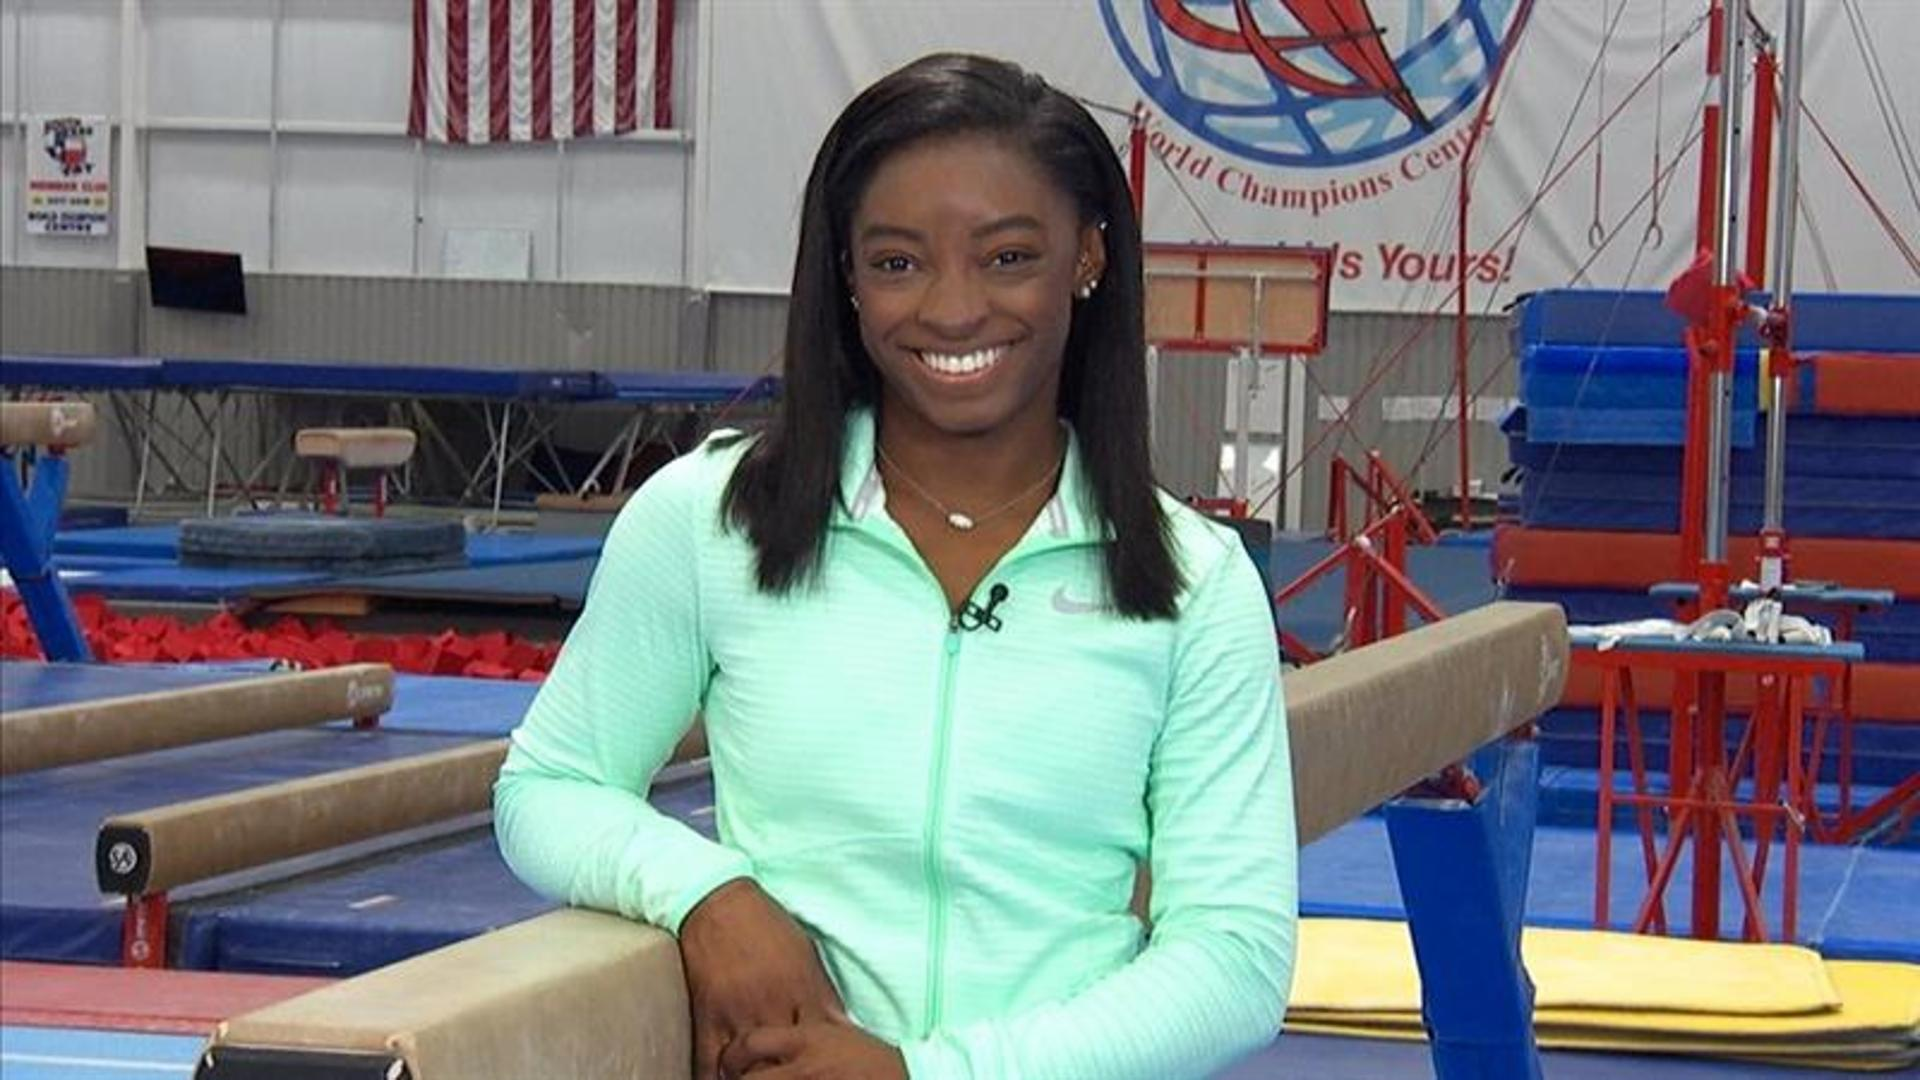 Simone Biles Opens Up About Wearing Teal For Sexual Abuse Survivors